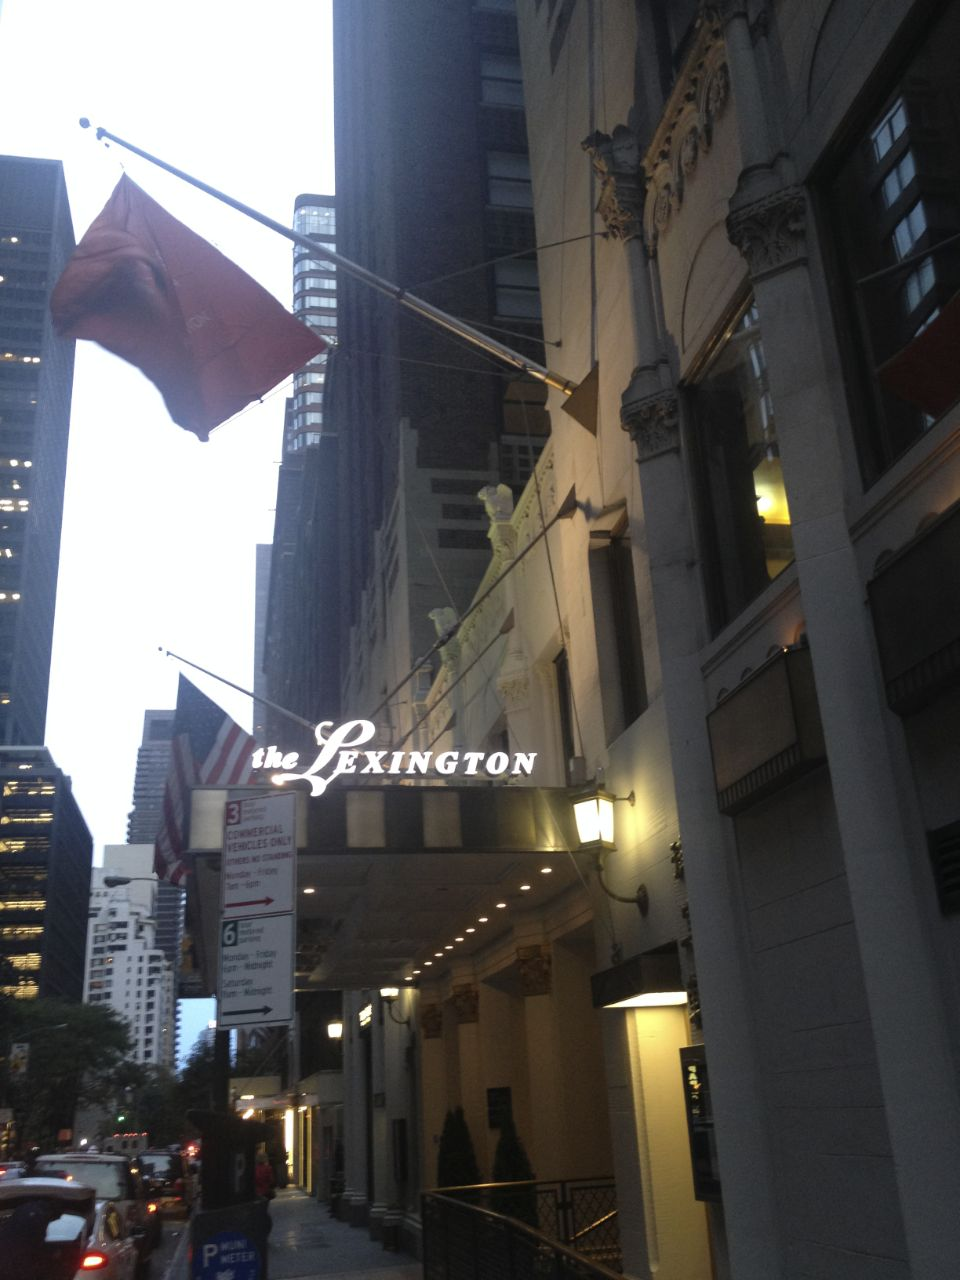 The outside view of the hotel I was staying at.